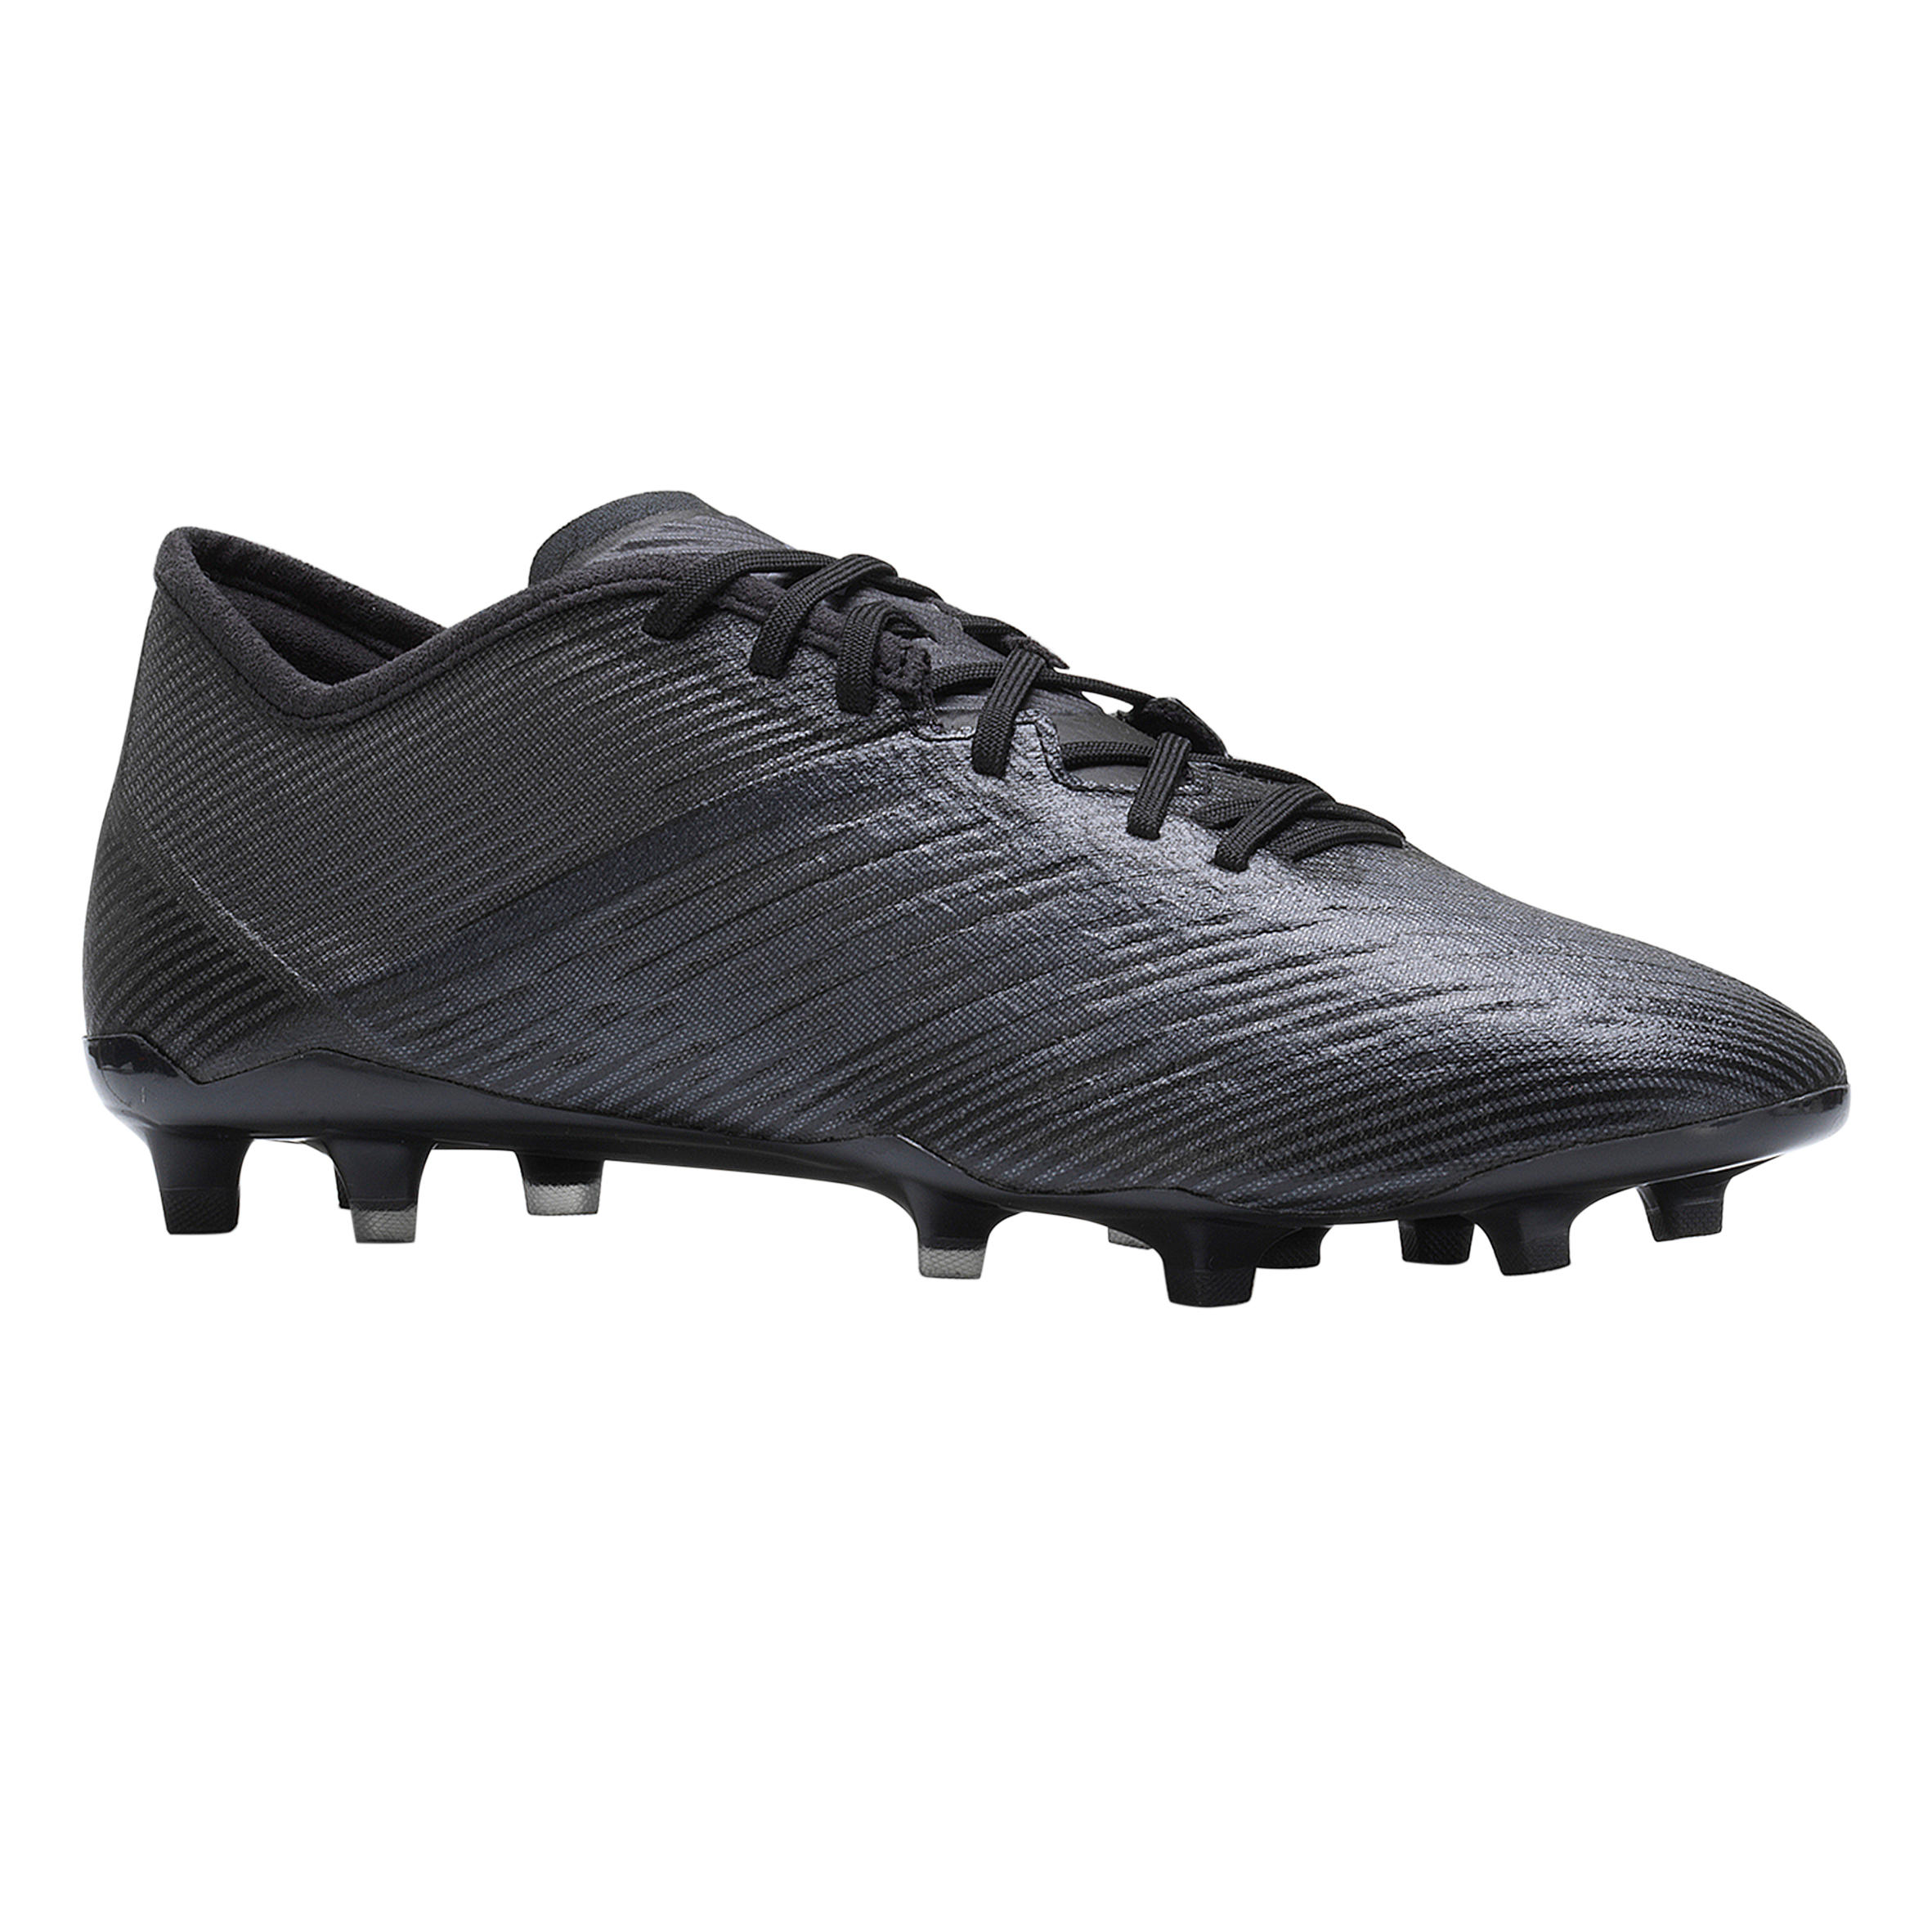 fcd211a6bafd Football Boots